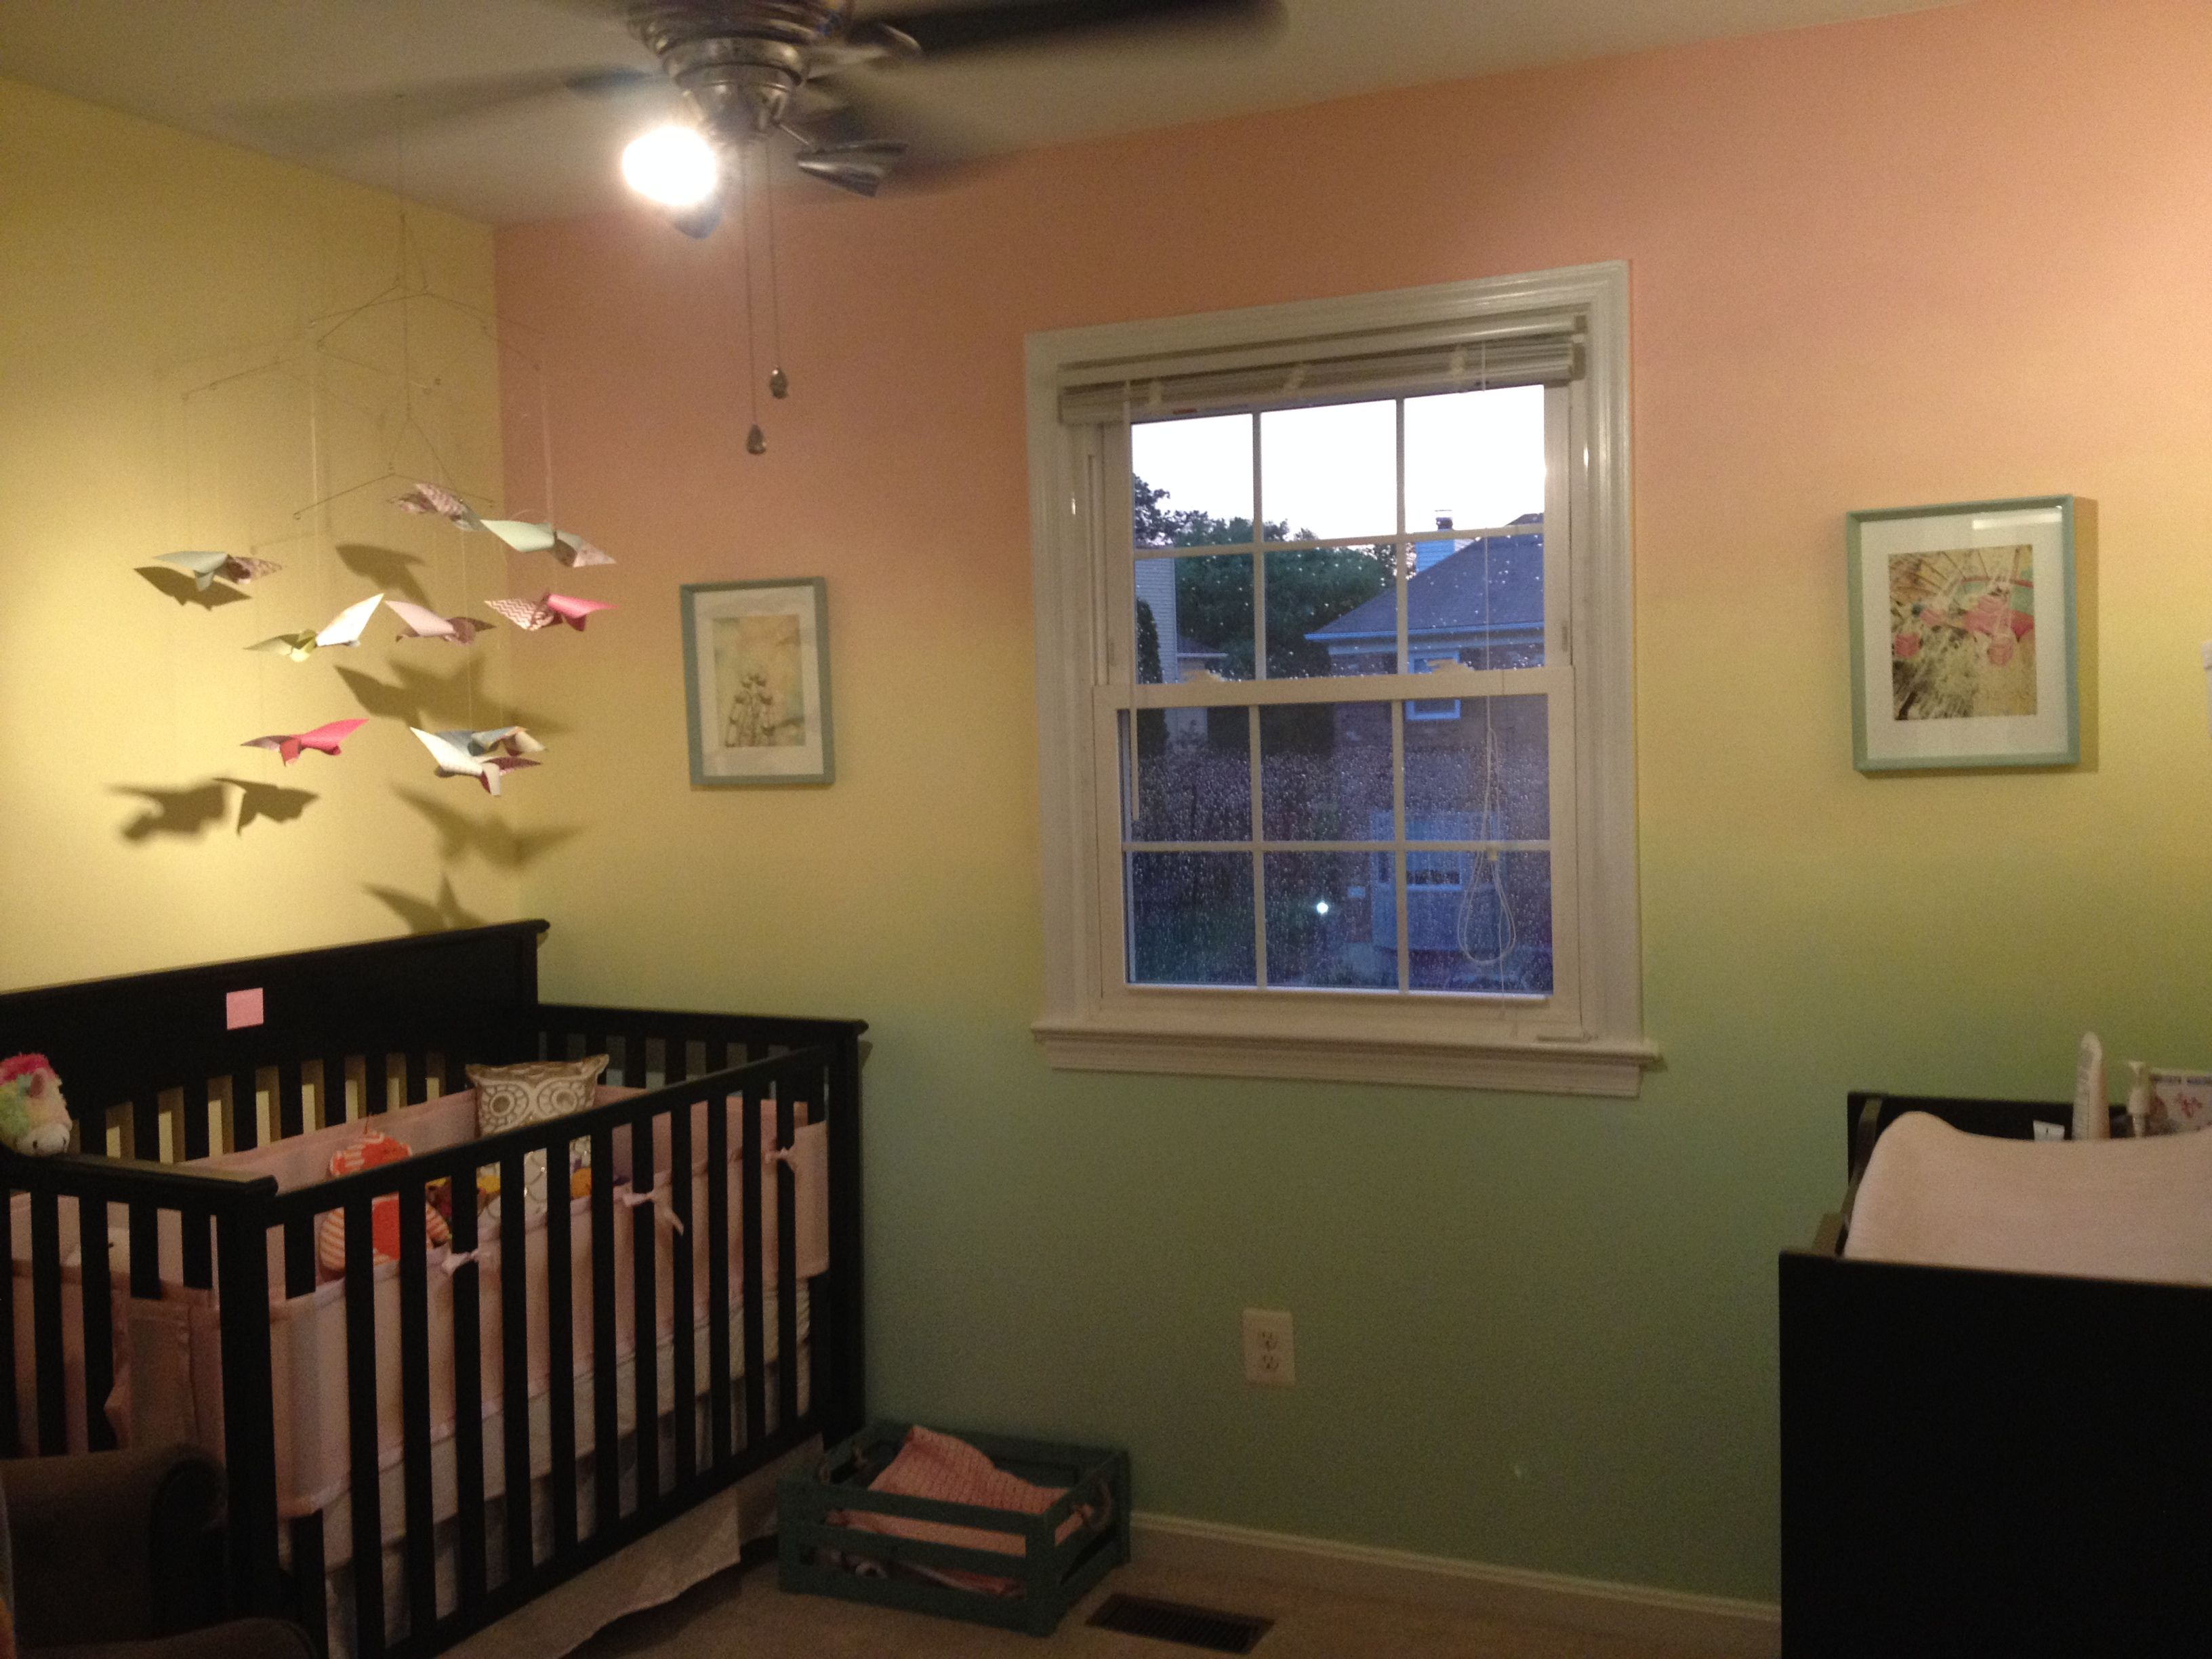 Bedroom paint two different colors - Bri S Whimsical Nursery 3 Color Ombre Wall Pick 3 Colors Of Paint Leave